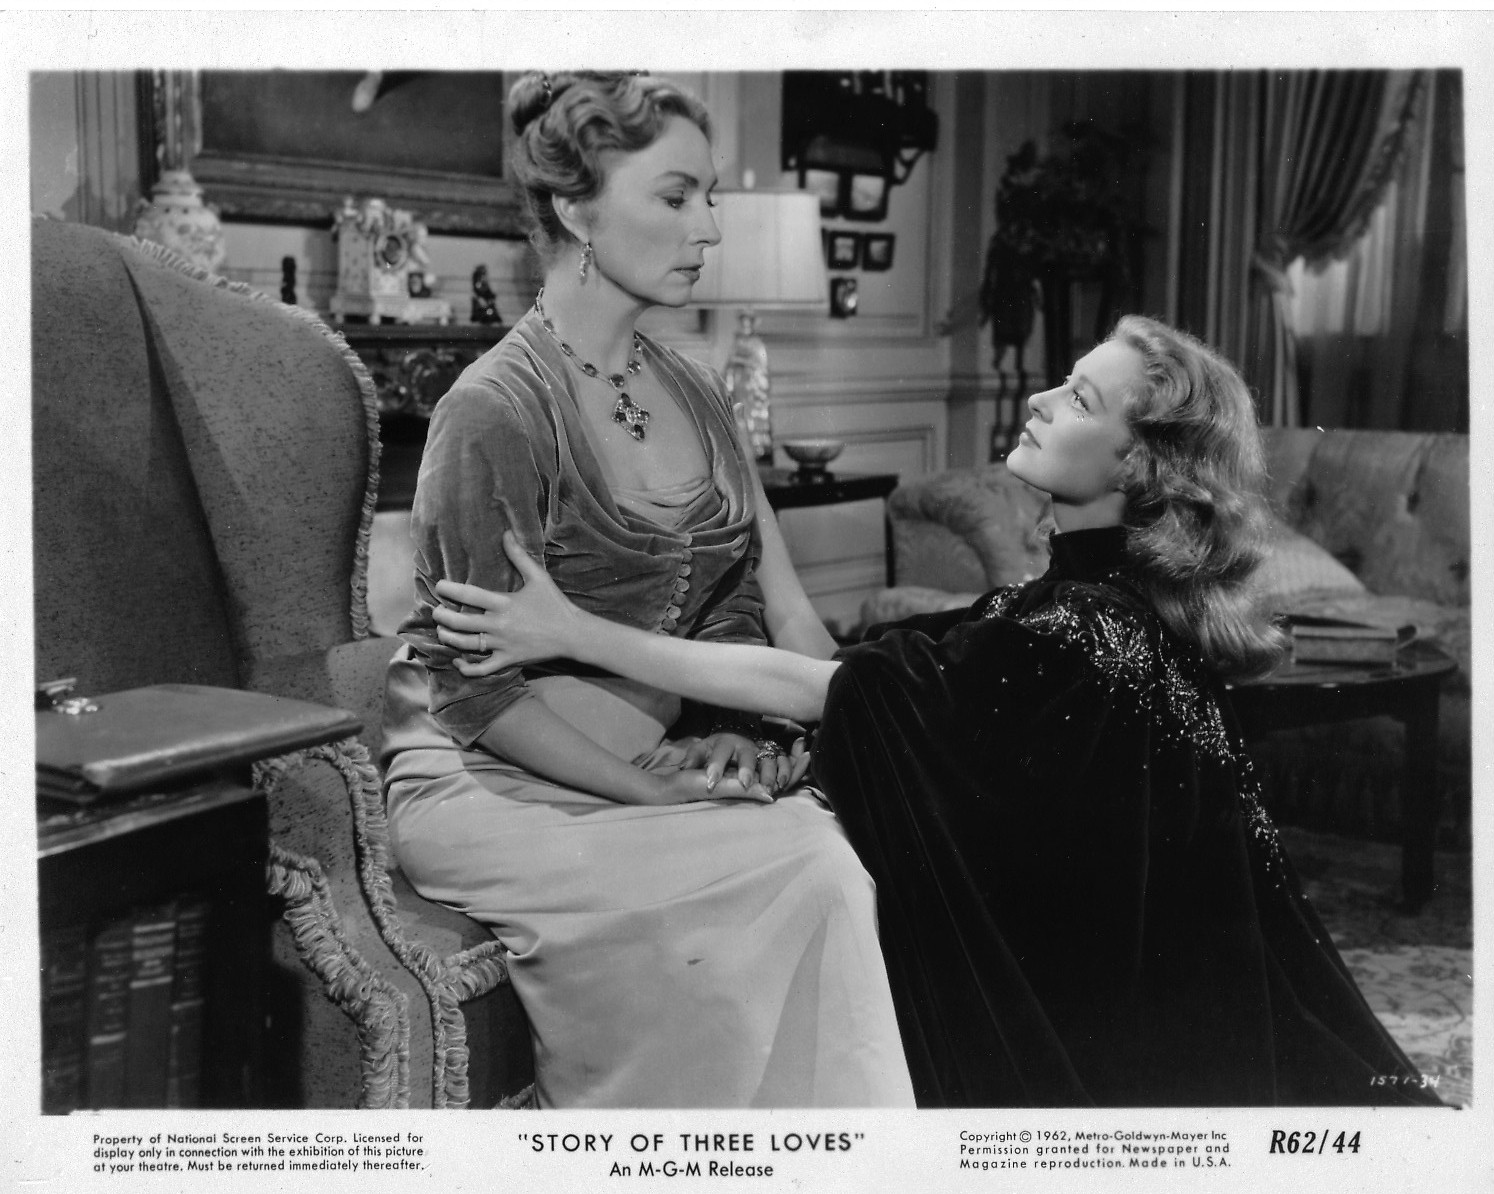 028-agnes-moorehead-theredlist-Agnes Moorehead with Moira Shearer in Story of Three Loves:The Jealous Lover directed by Gottfried Reinhardt, 1953